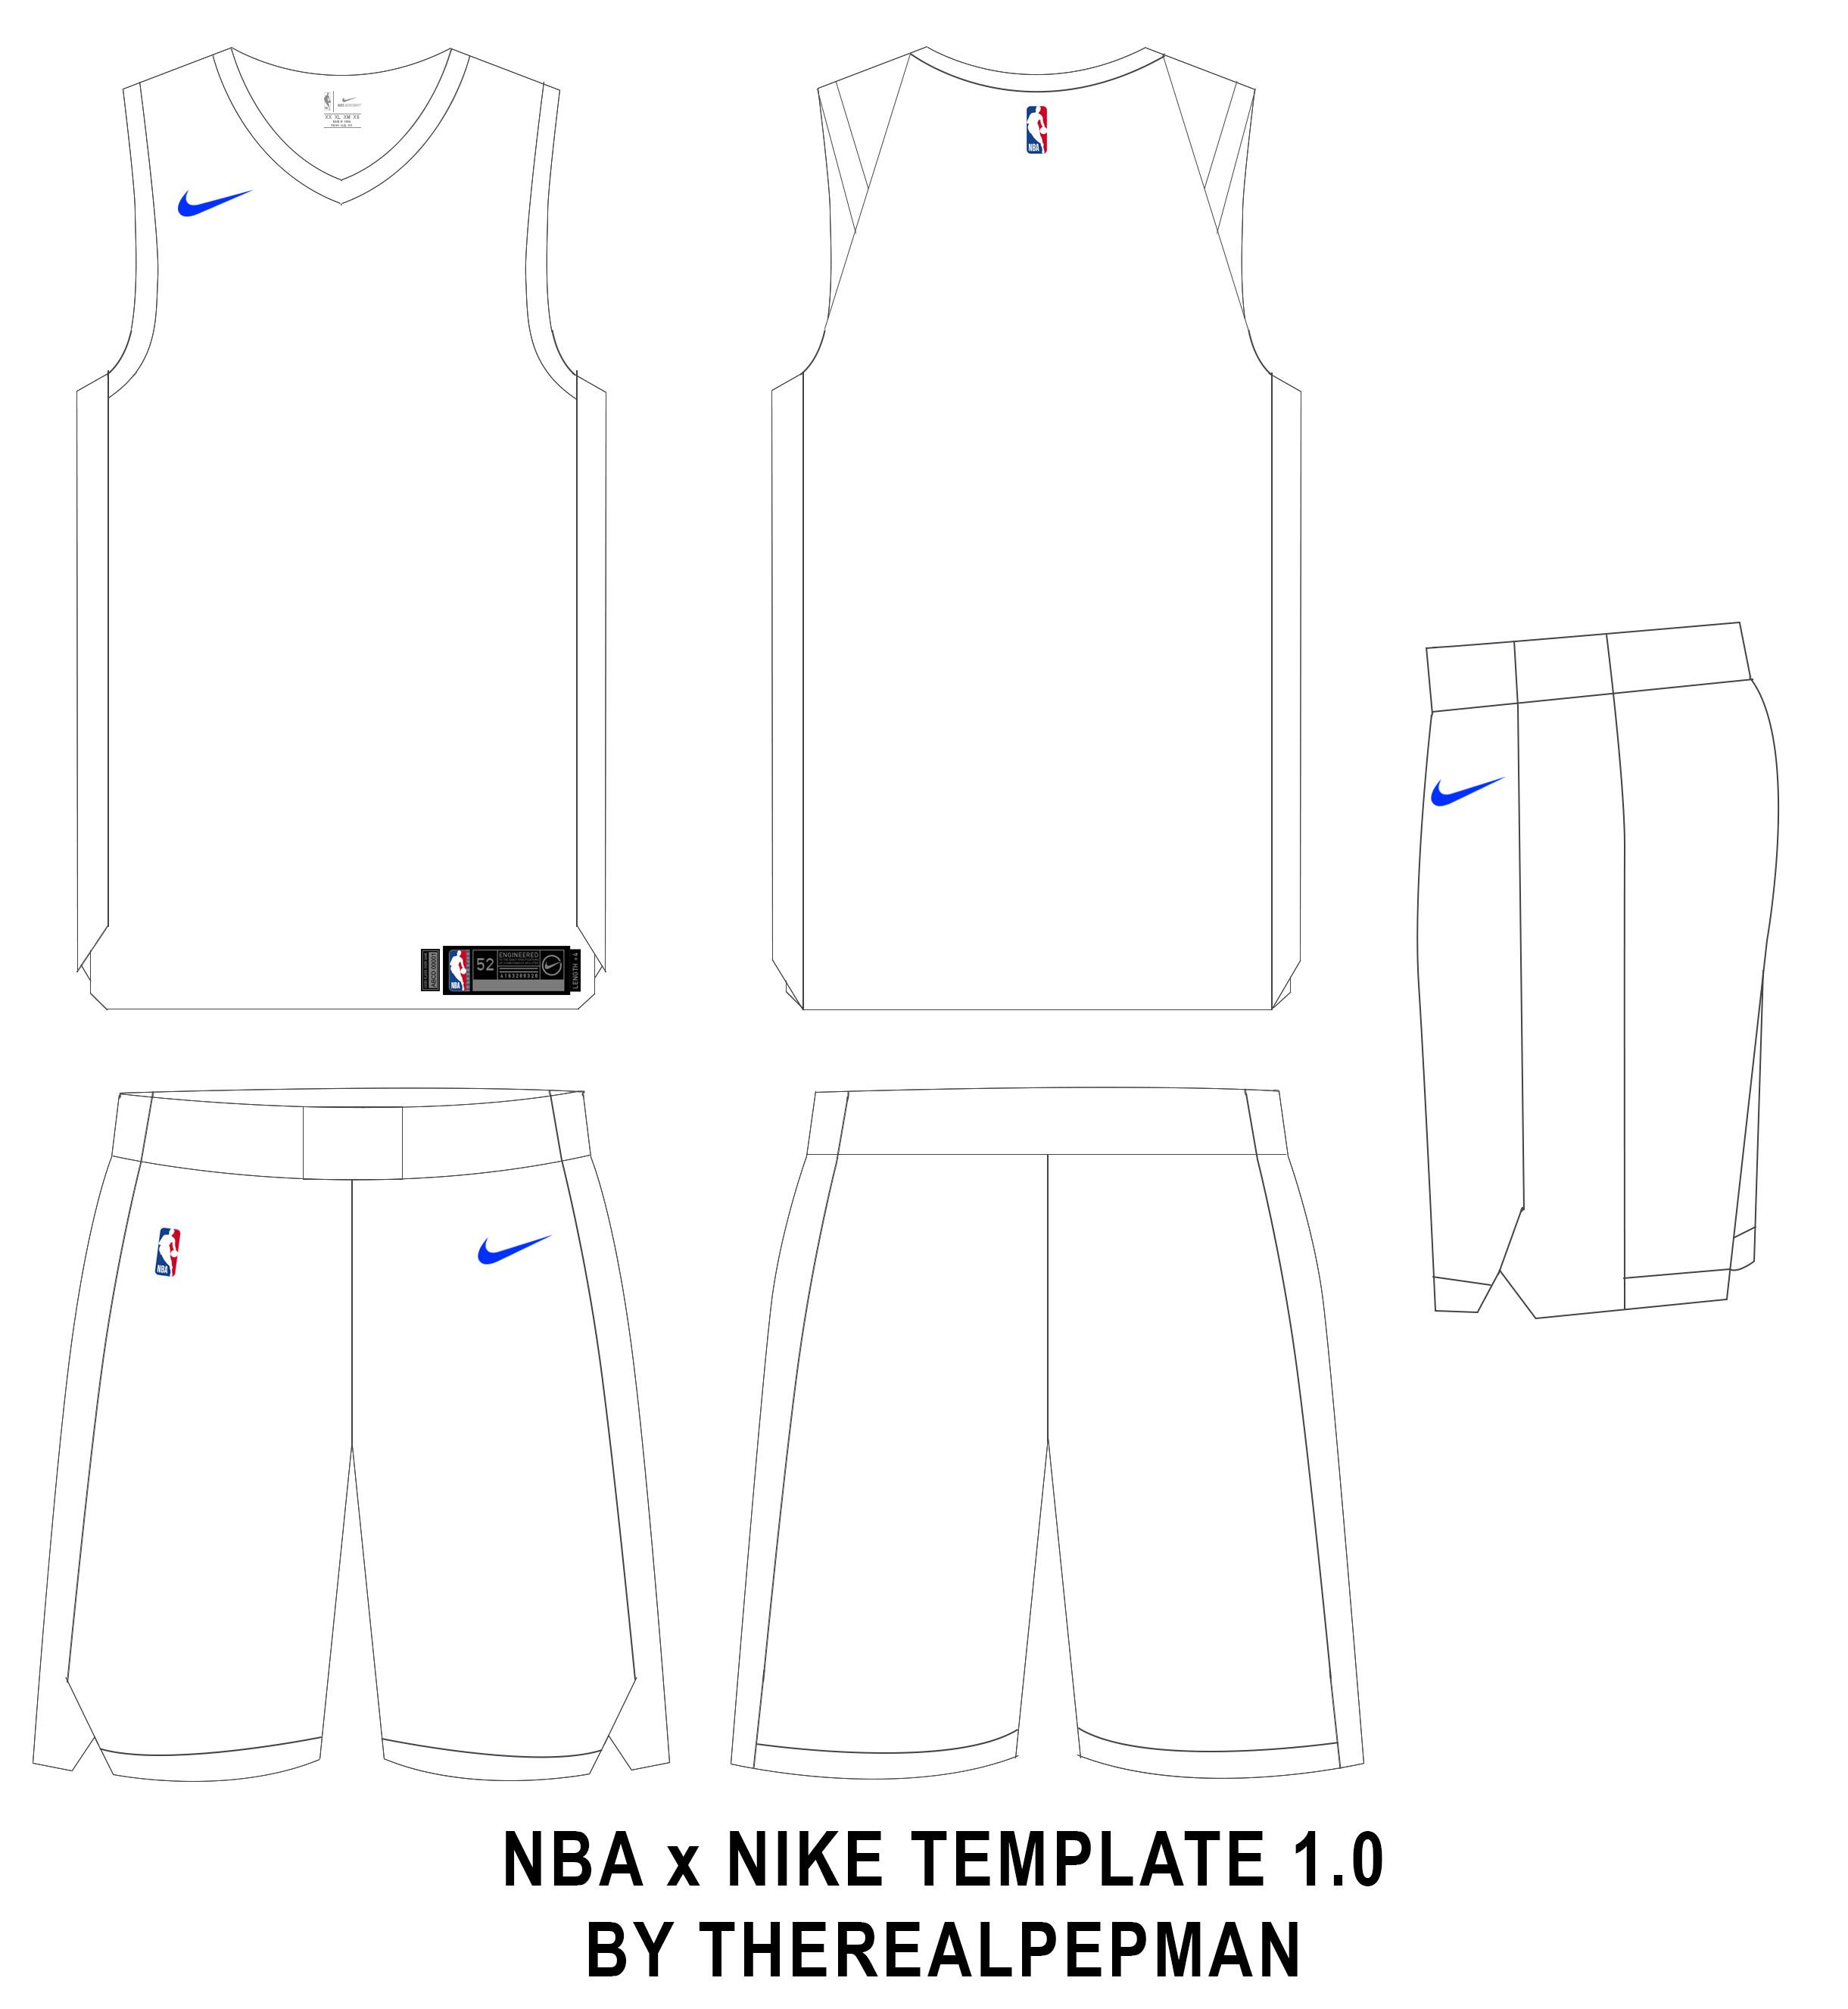 Download Image Result For Basketball Jersey Template Sports Jersey Design Basketball Uniforms Design Basketball Design